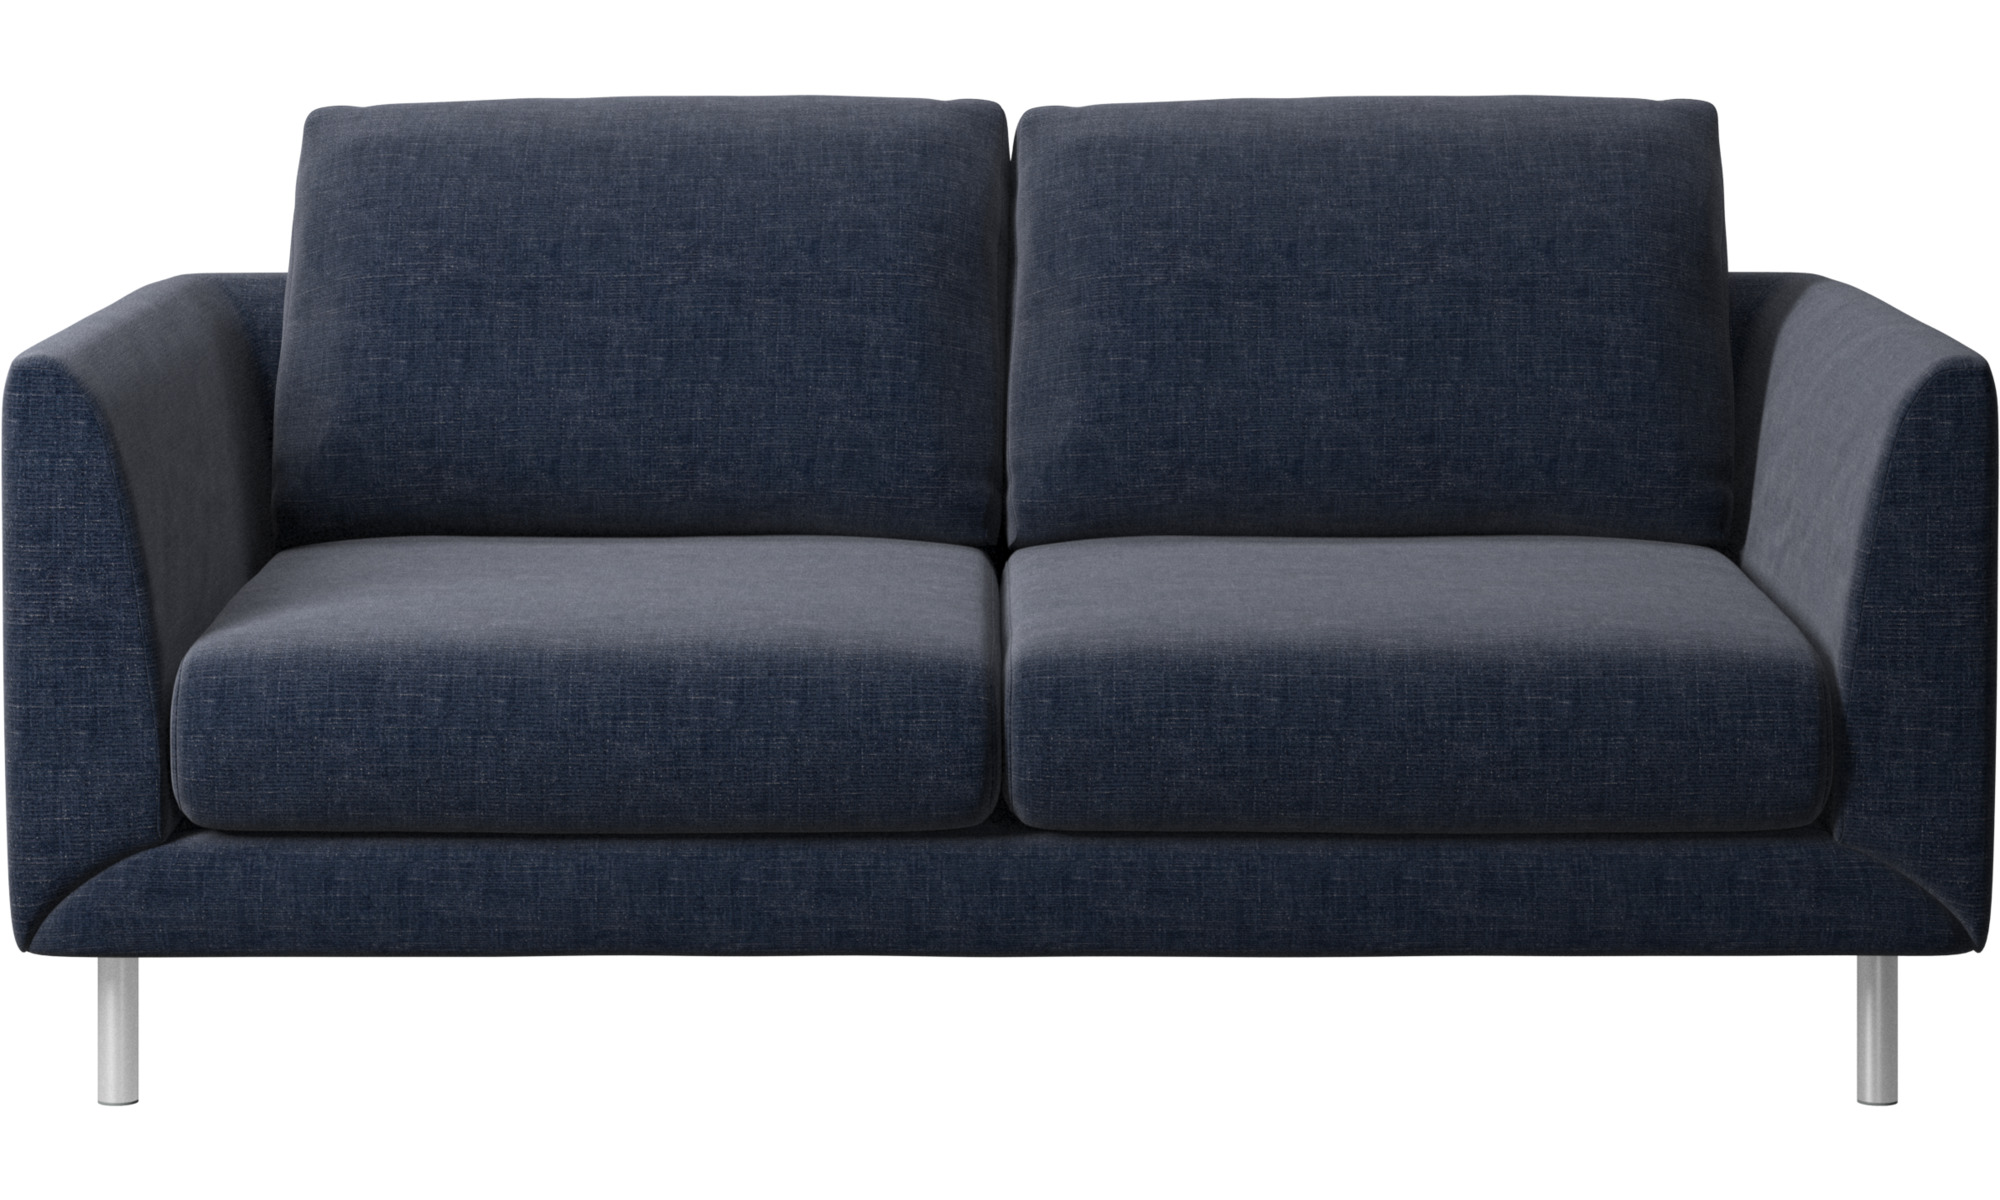 dunkelblauer napoli stoff fargo sofa boconcept. Black Bedroom Furniture Sets. Home Design Ideas